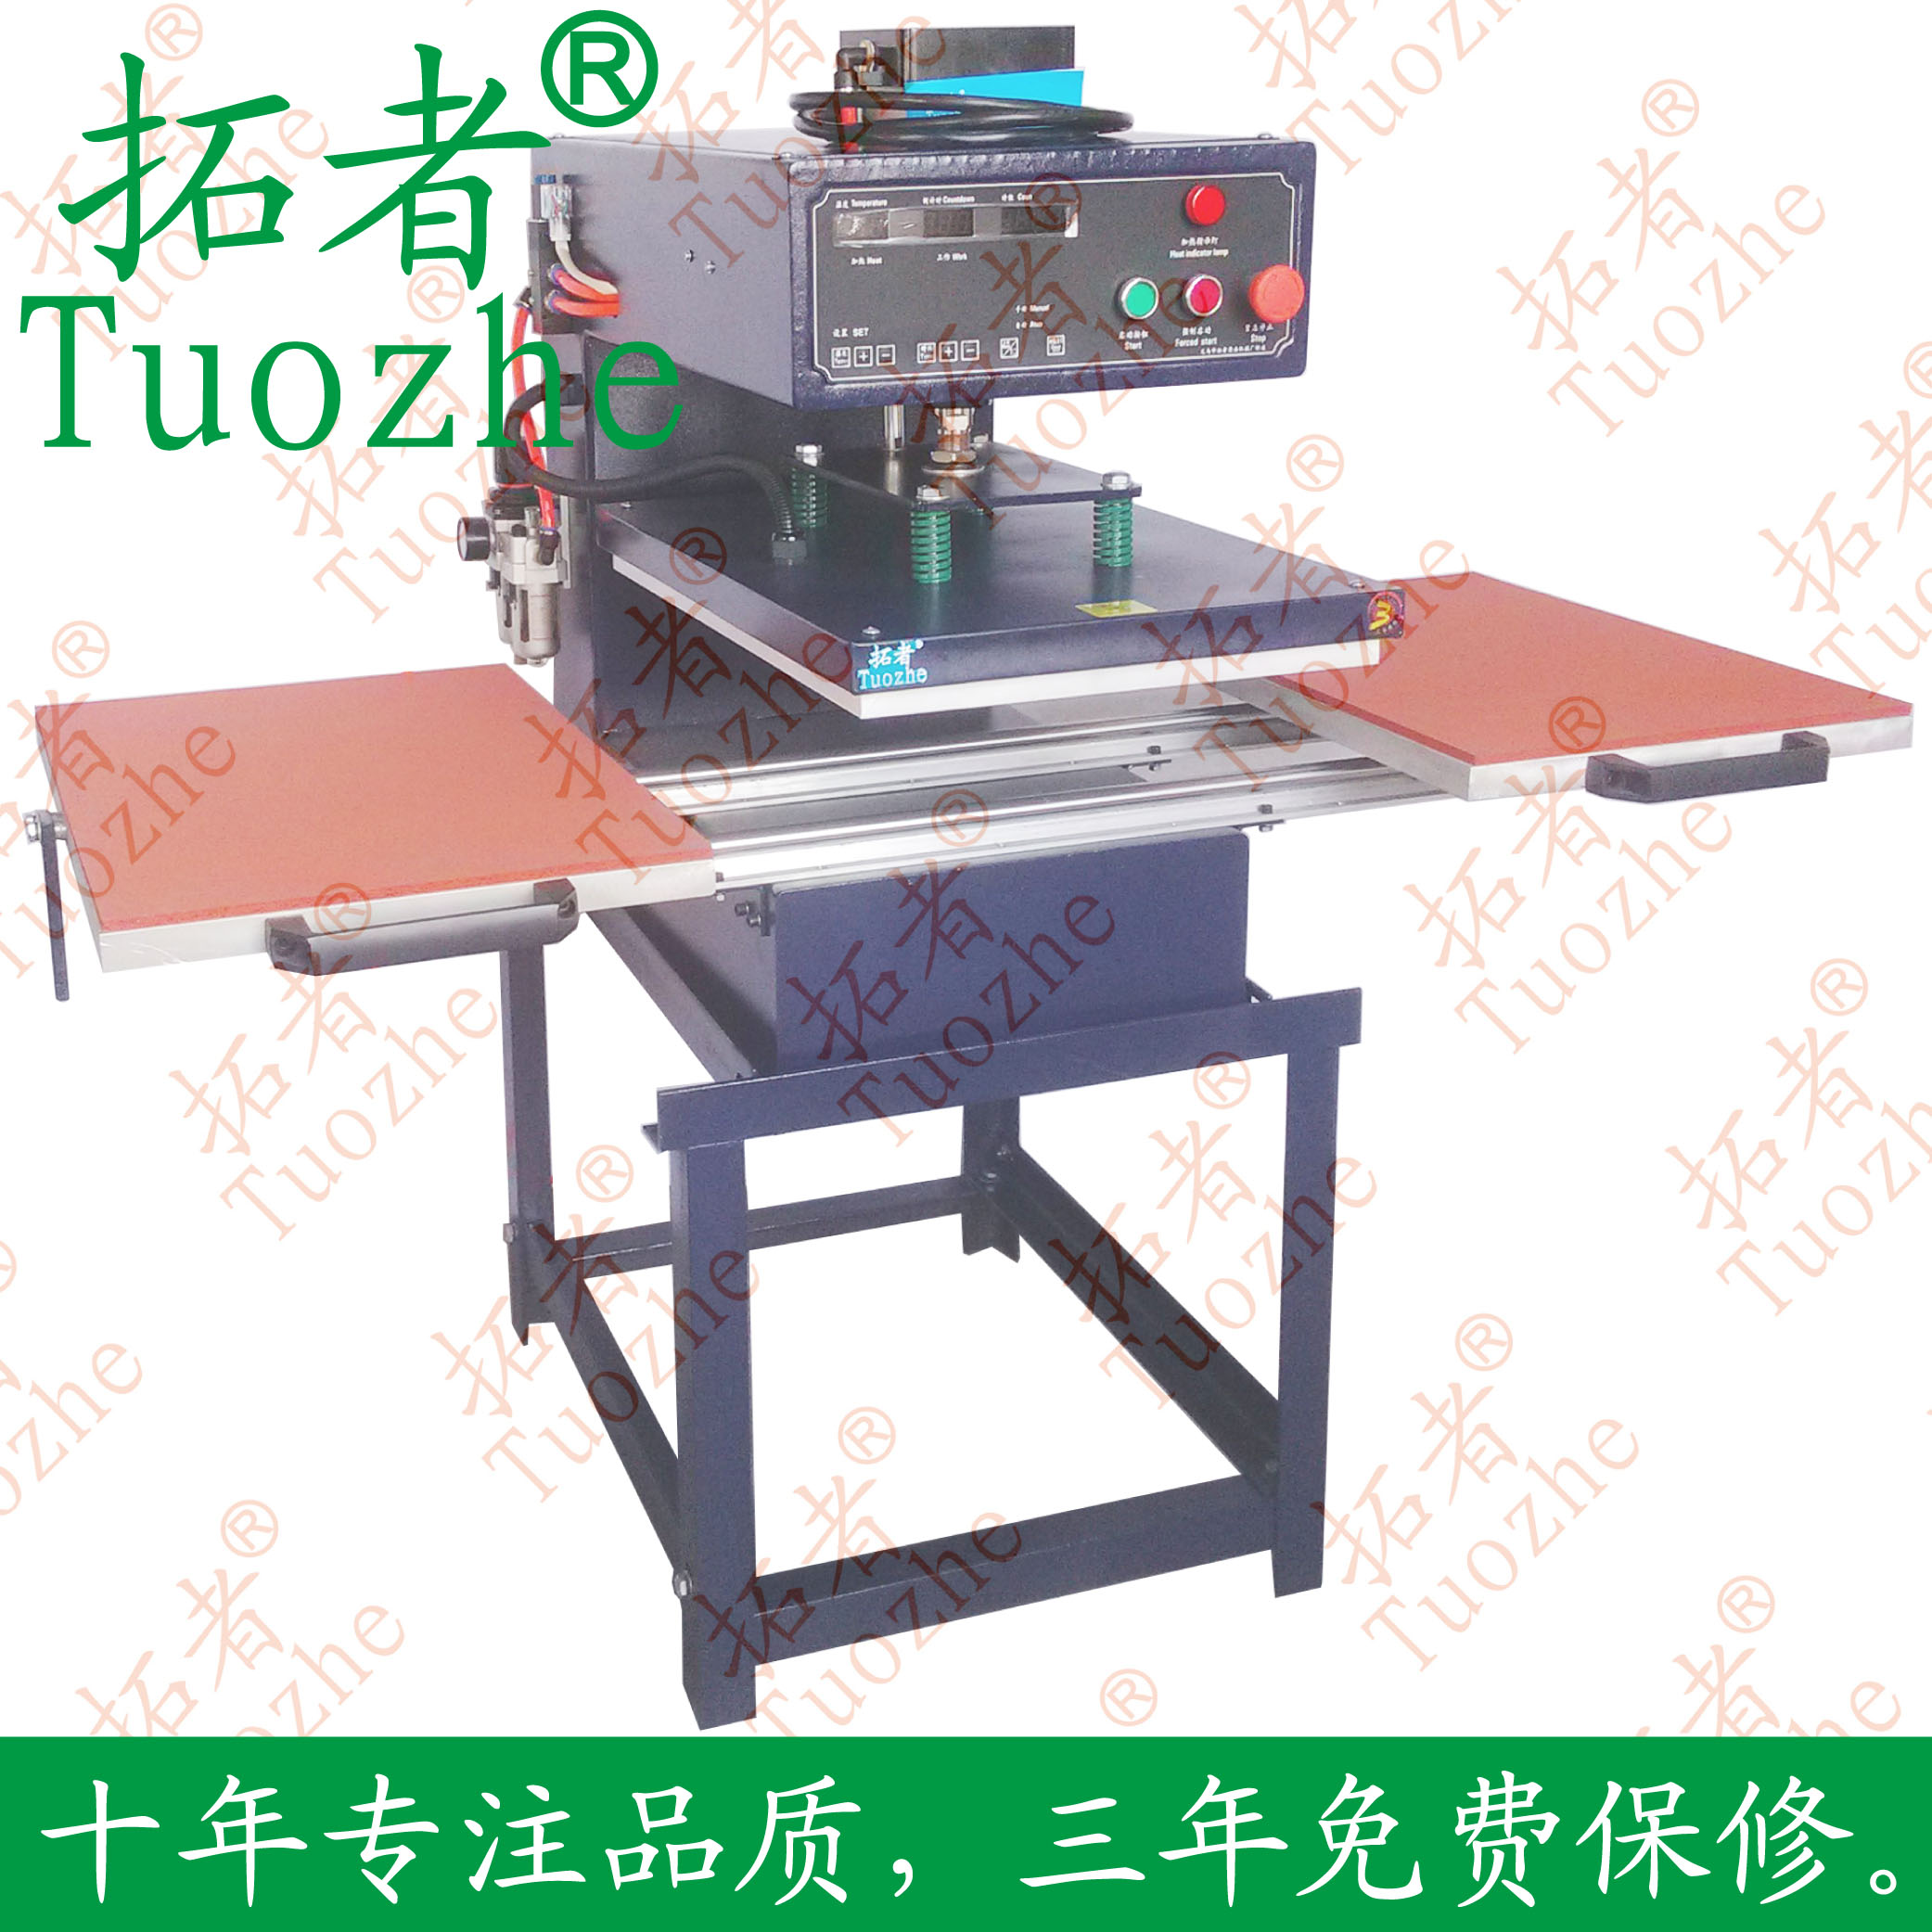 Sublimation Press Thermal Transfer Equipment 50 70 Pneumatic Heat Transfer Machine